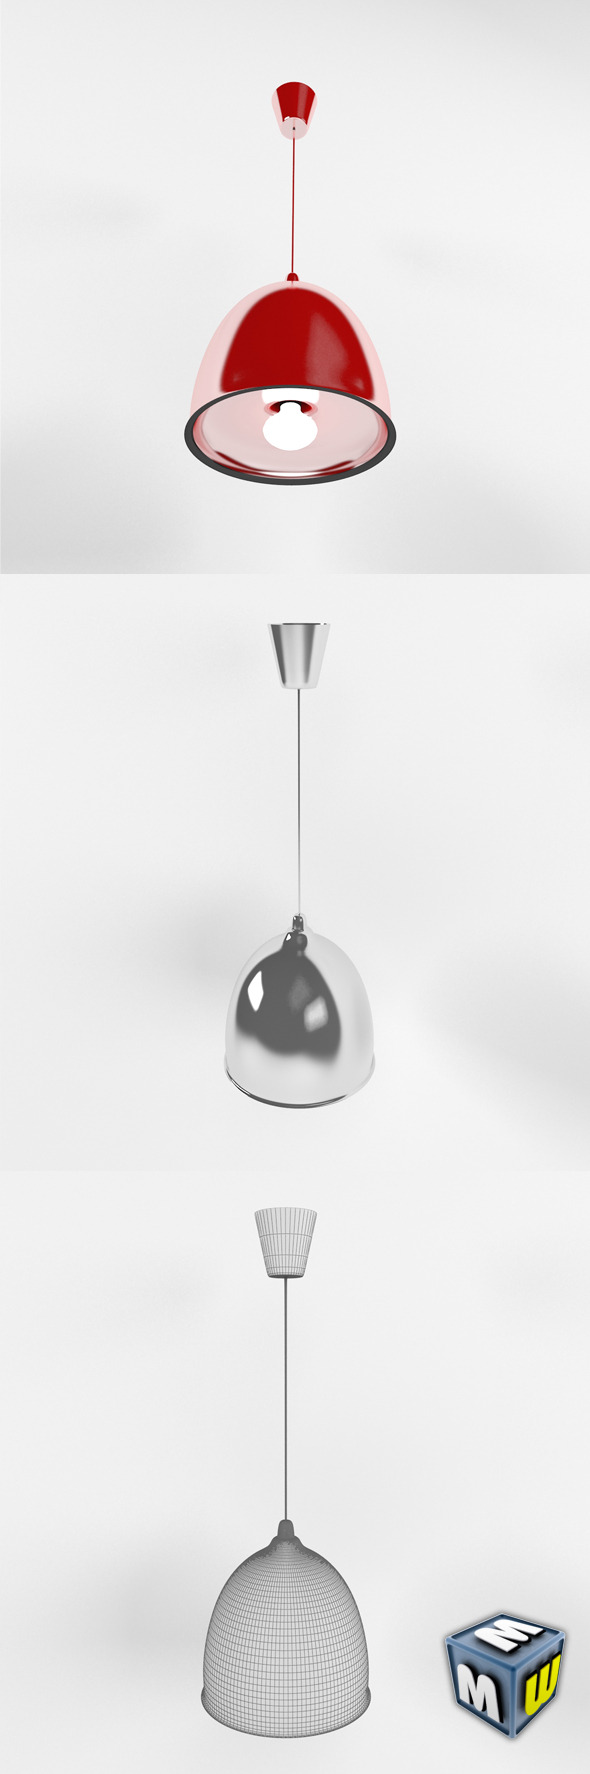 Kitchen Lamp MAX 2011 - 3DOcean Item for Sale